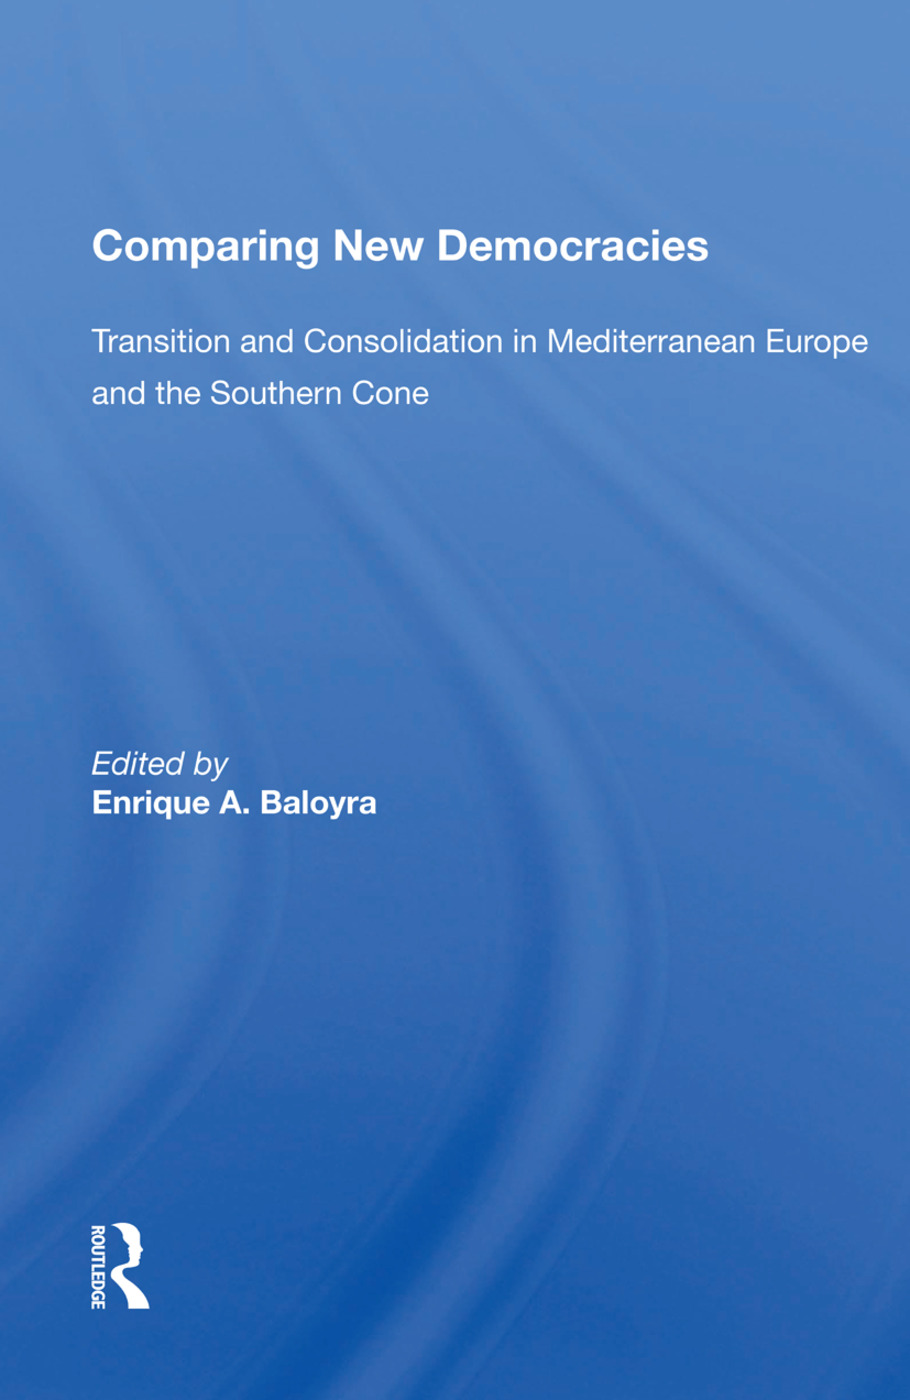 Comparing New Democracies: Transition And Consolidation In Mediterranean Europe And The Southern Cone book cover